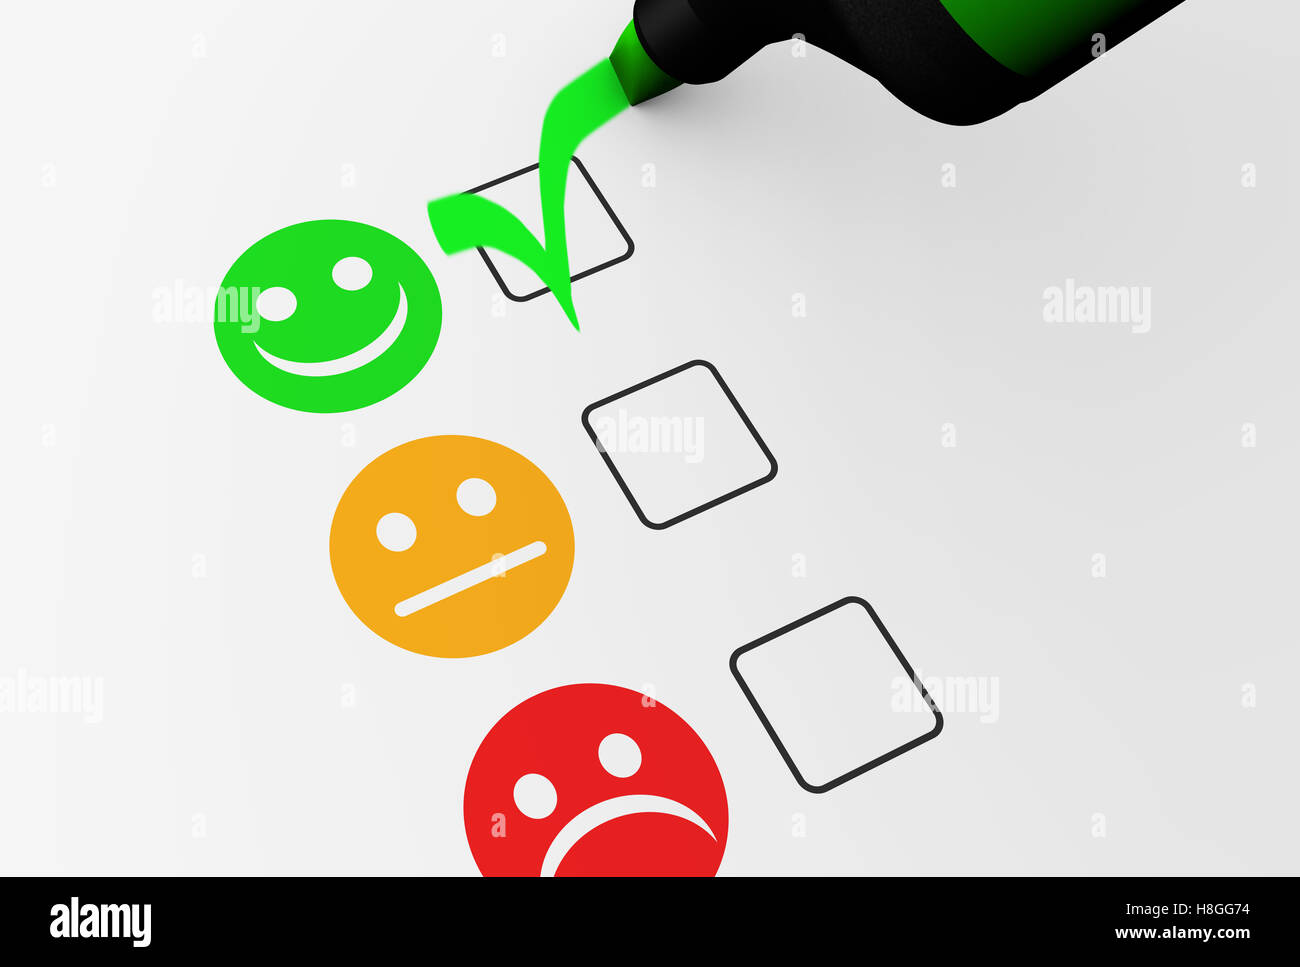 Customer satisfaction happy feedback rating checklist and business quality evaluation concept illustration. - Stock Image